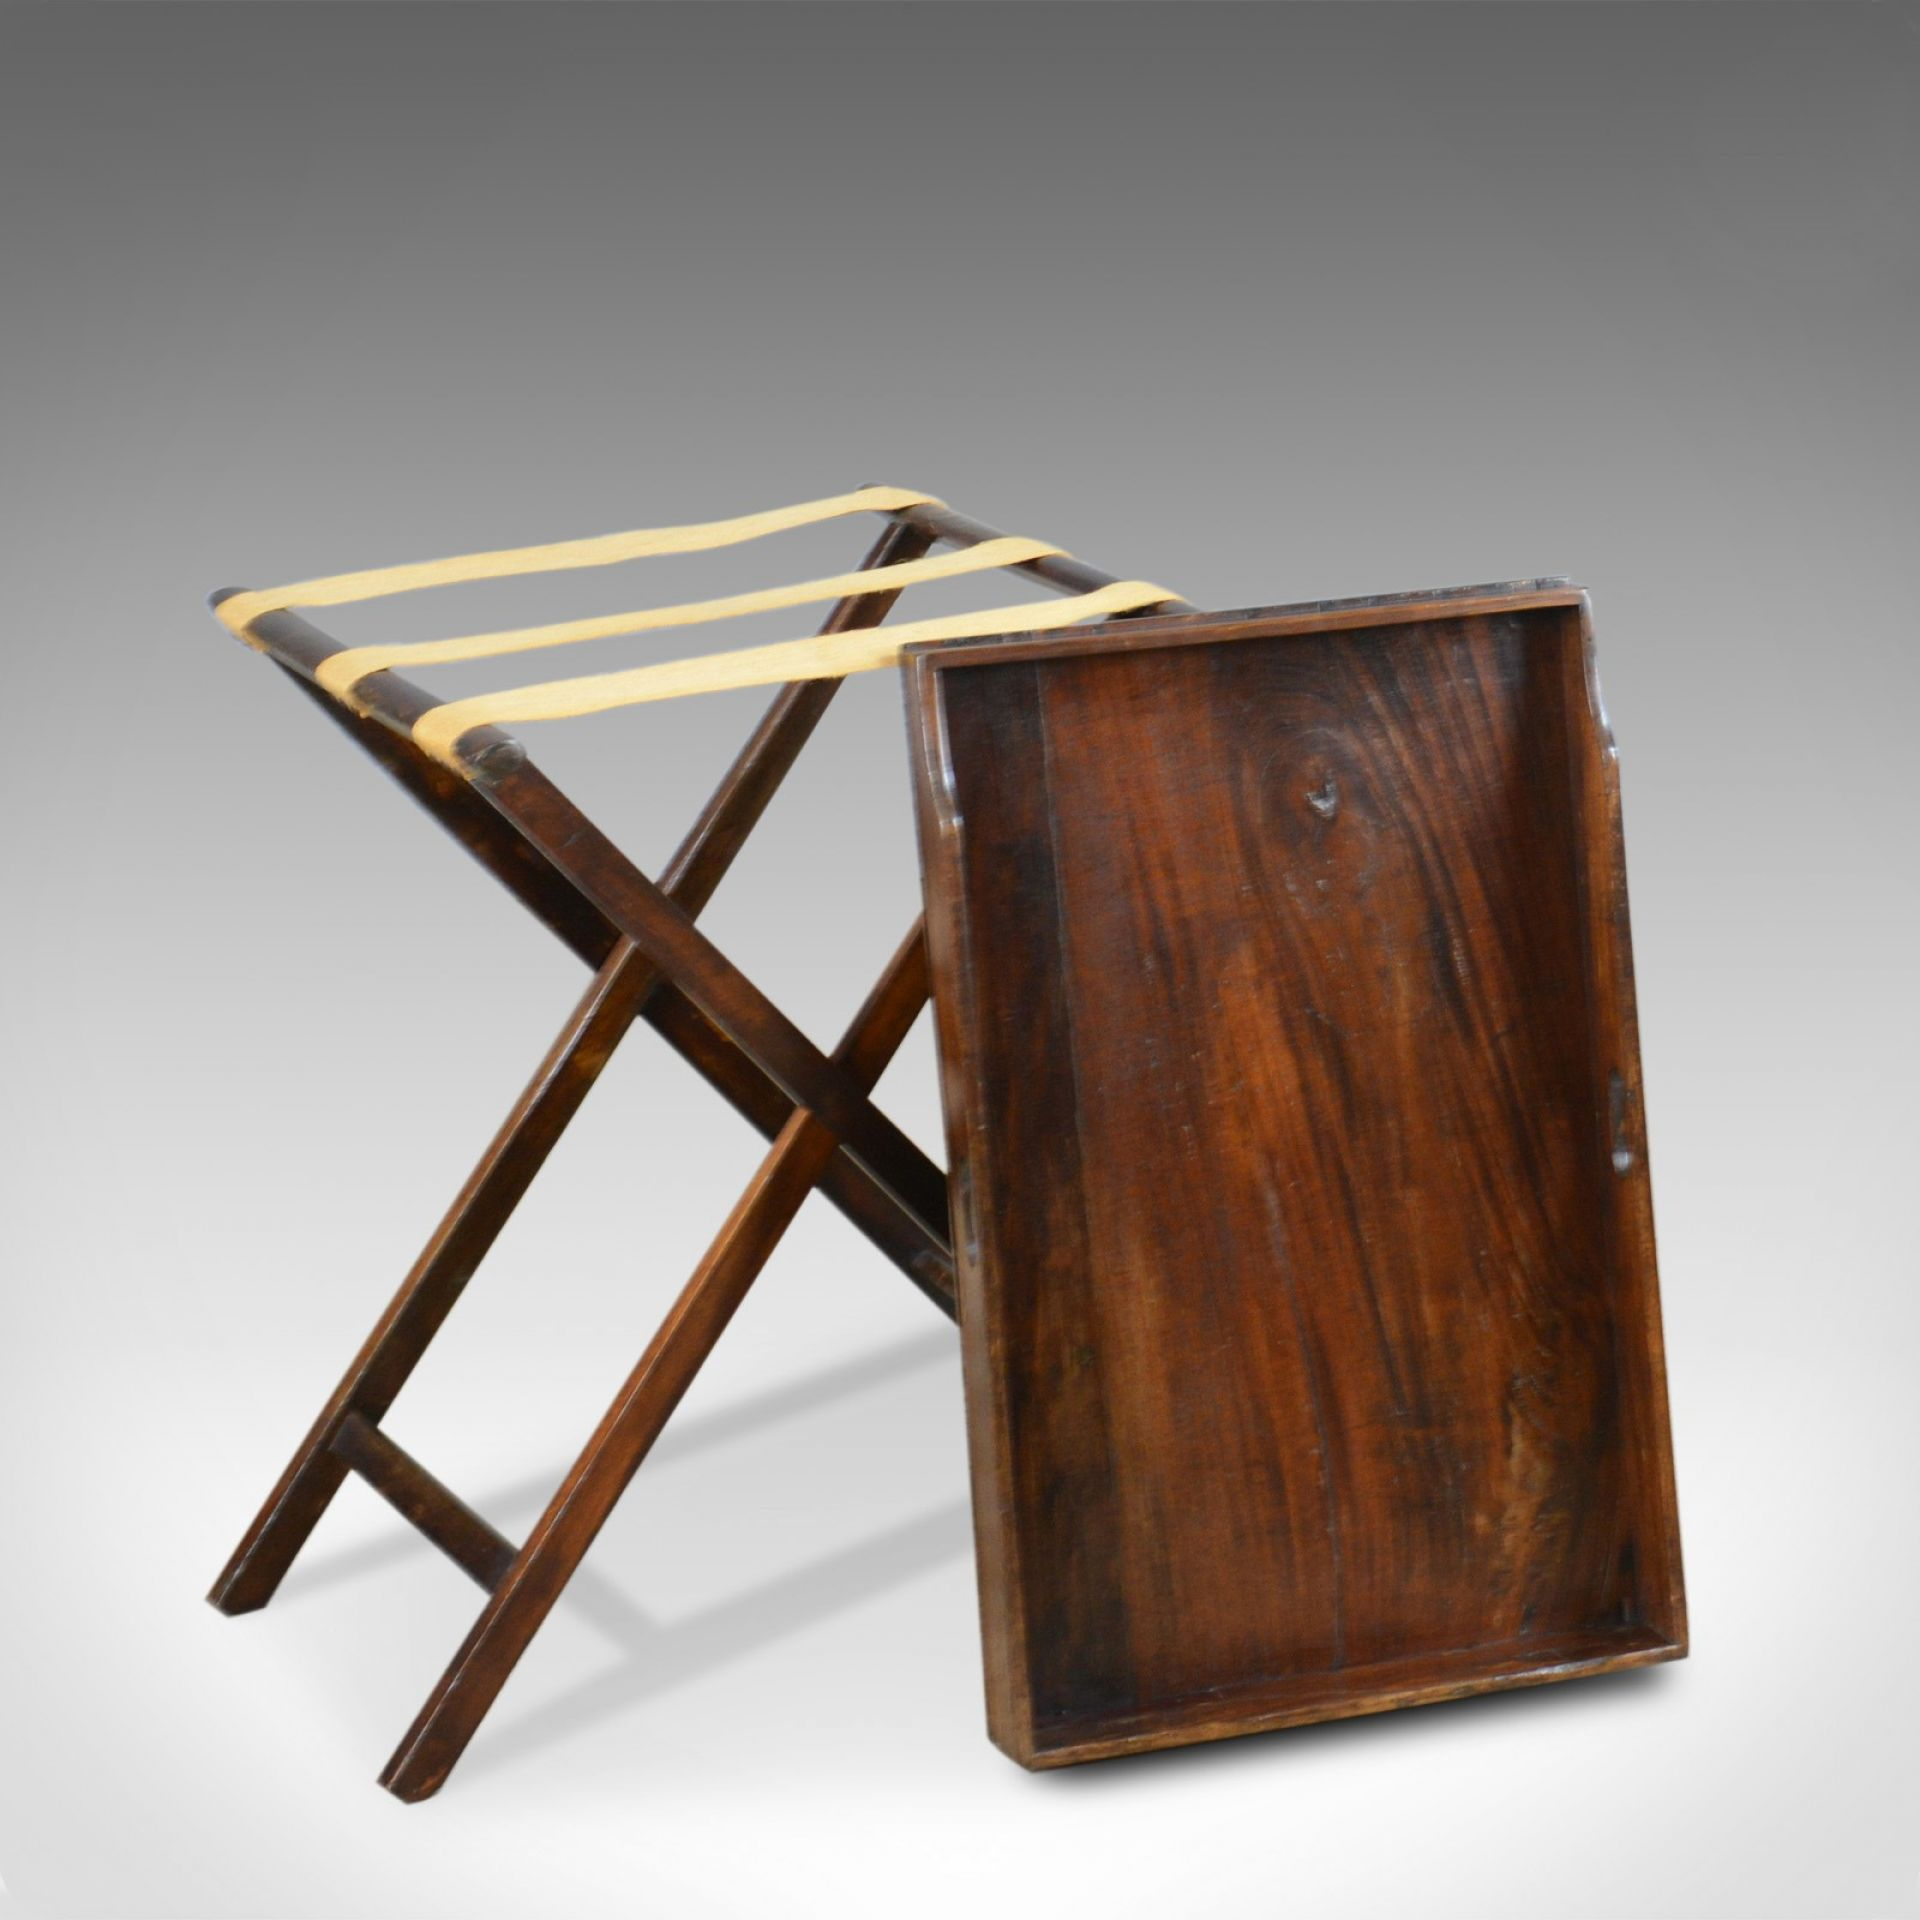 Antique Butler's Tray Table, Victorian, Mahogany, Folding Stand, Circa 1900